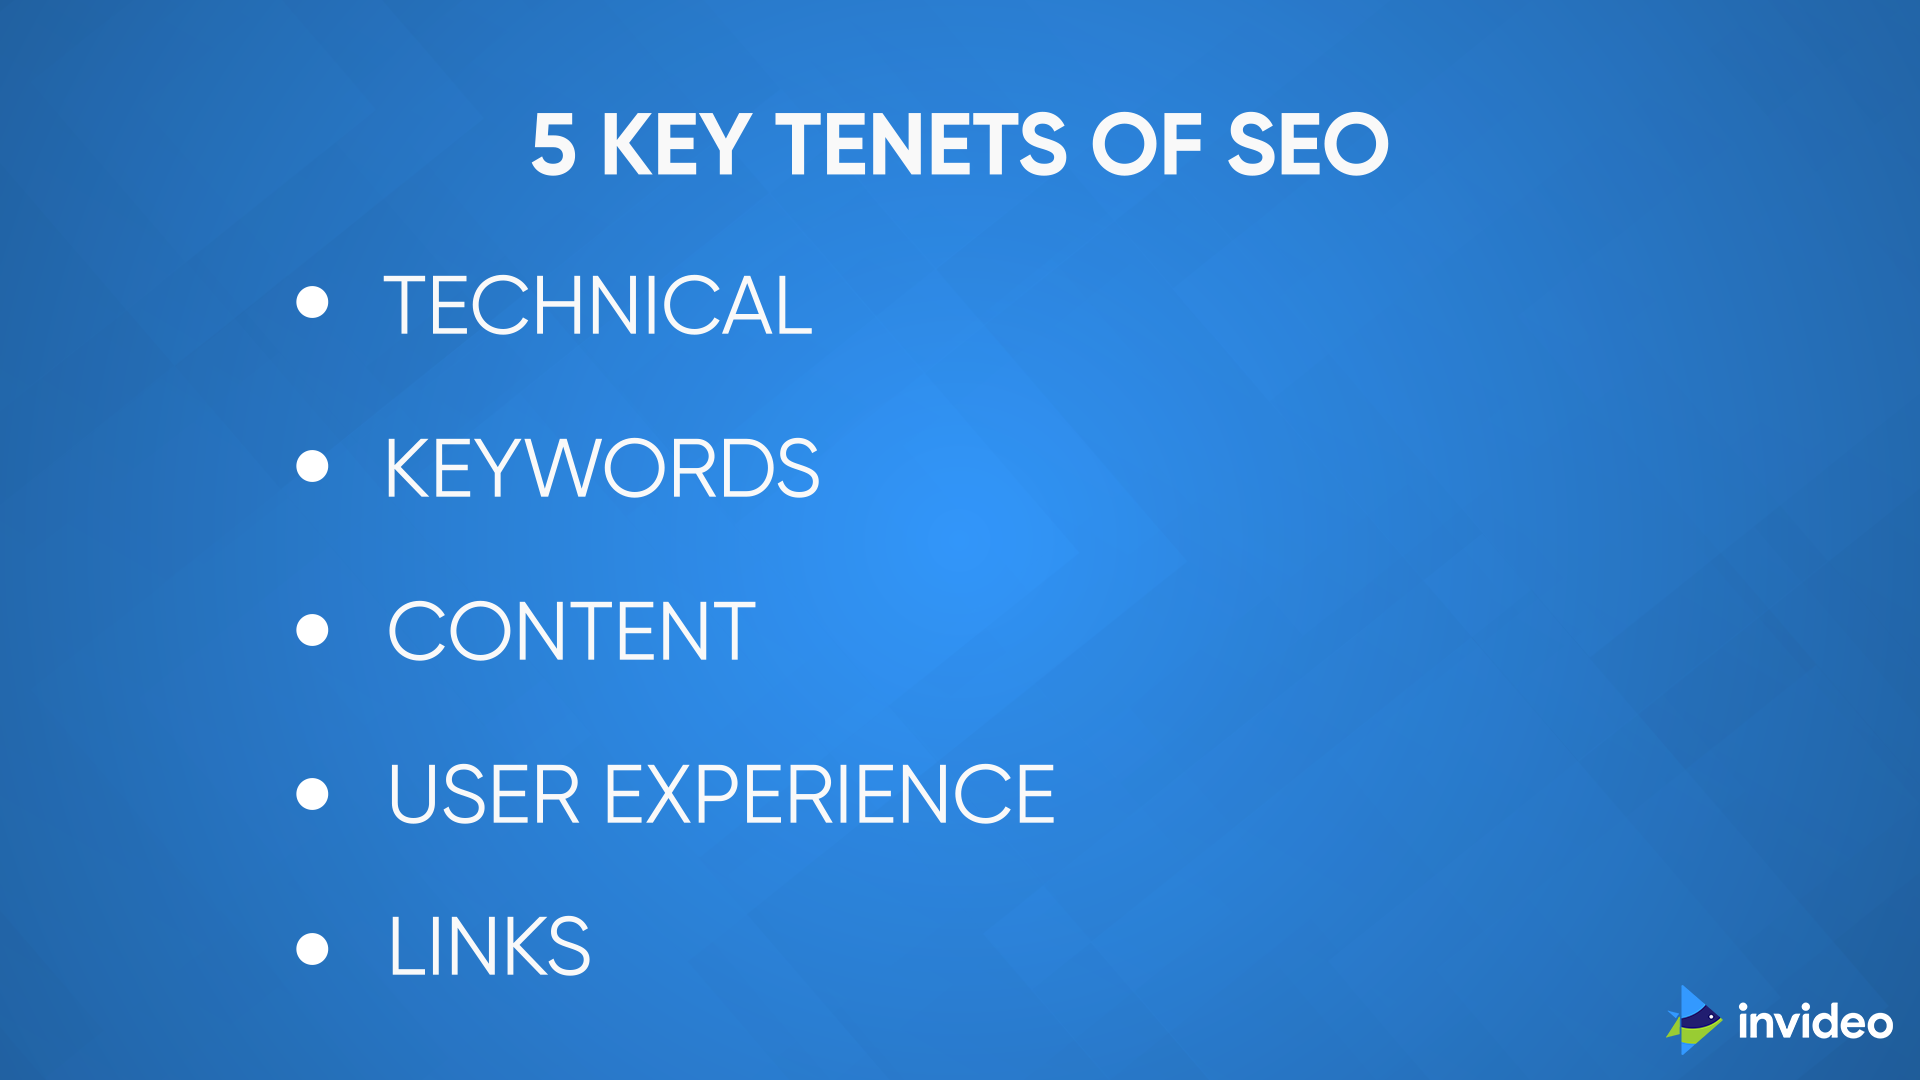 5 Key Tenets of SEO